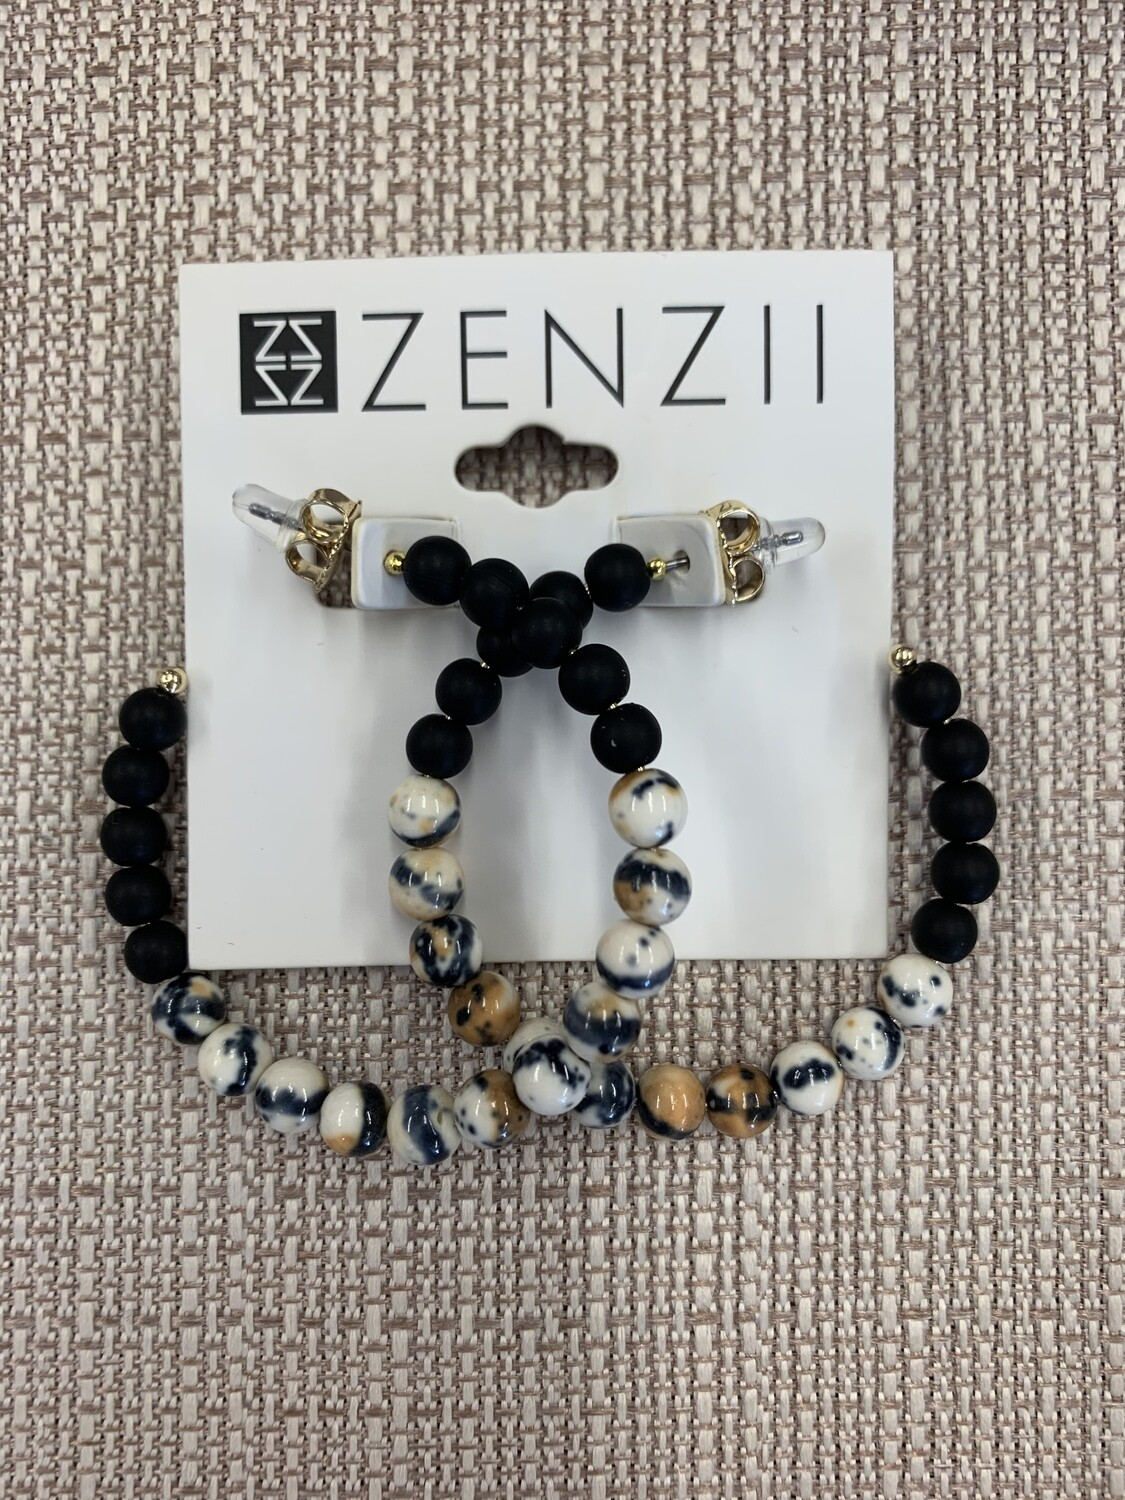 Zenzii Porcelain & Resin Beaded Hoop Earring